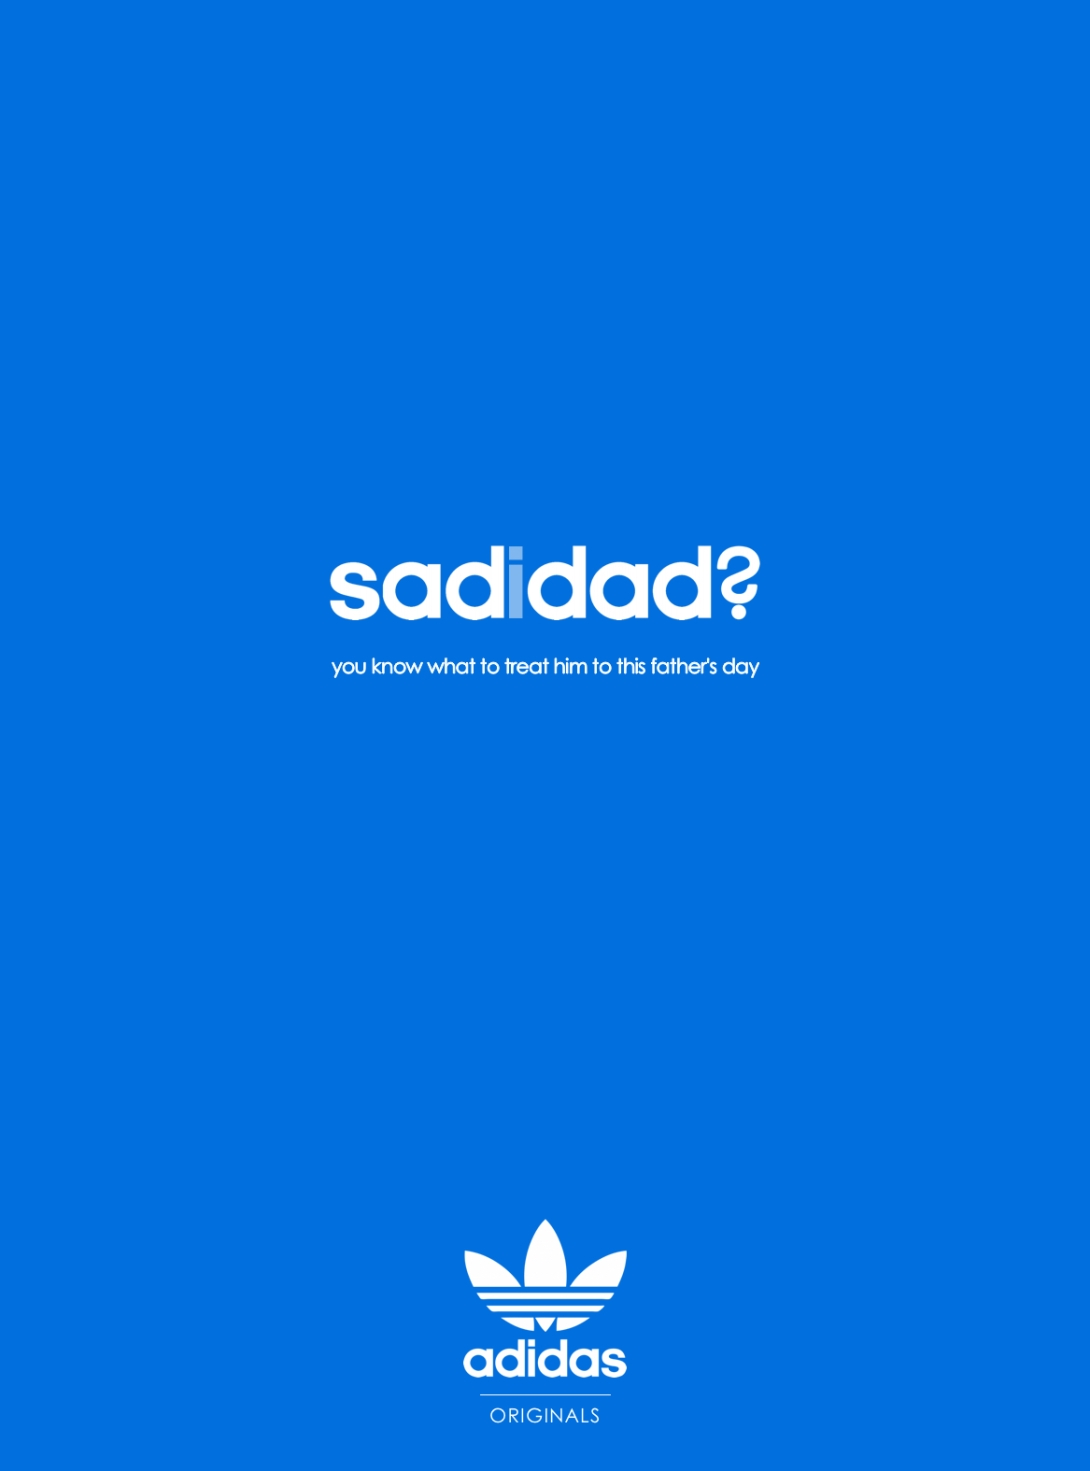 Father's Day advertising idea for a sports apparel brand: sad dad? adidas